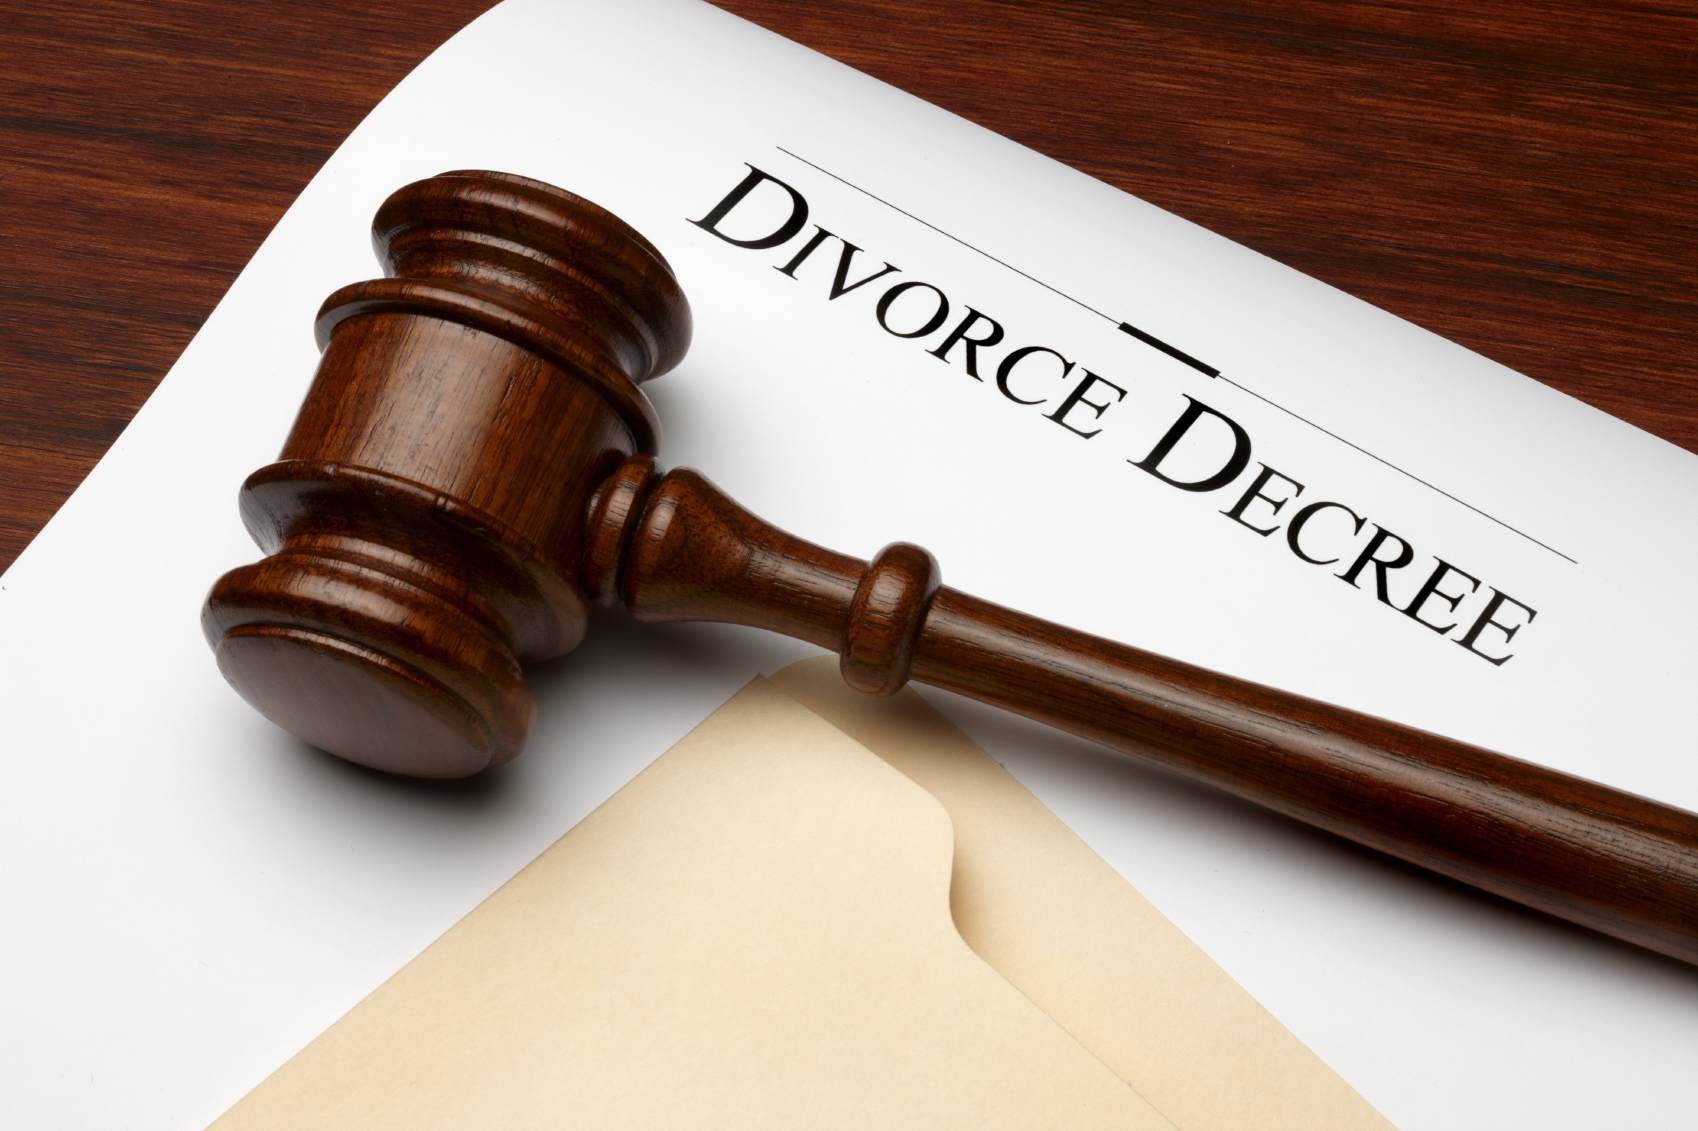 Prenuptial Agreements - The Before Marriage Divorce Contract